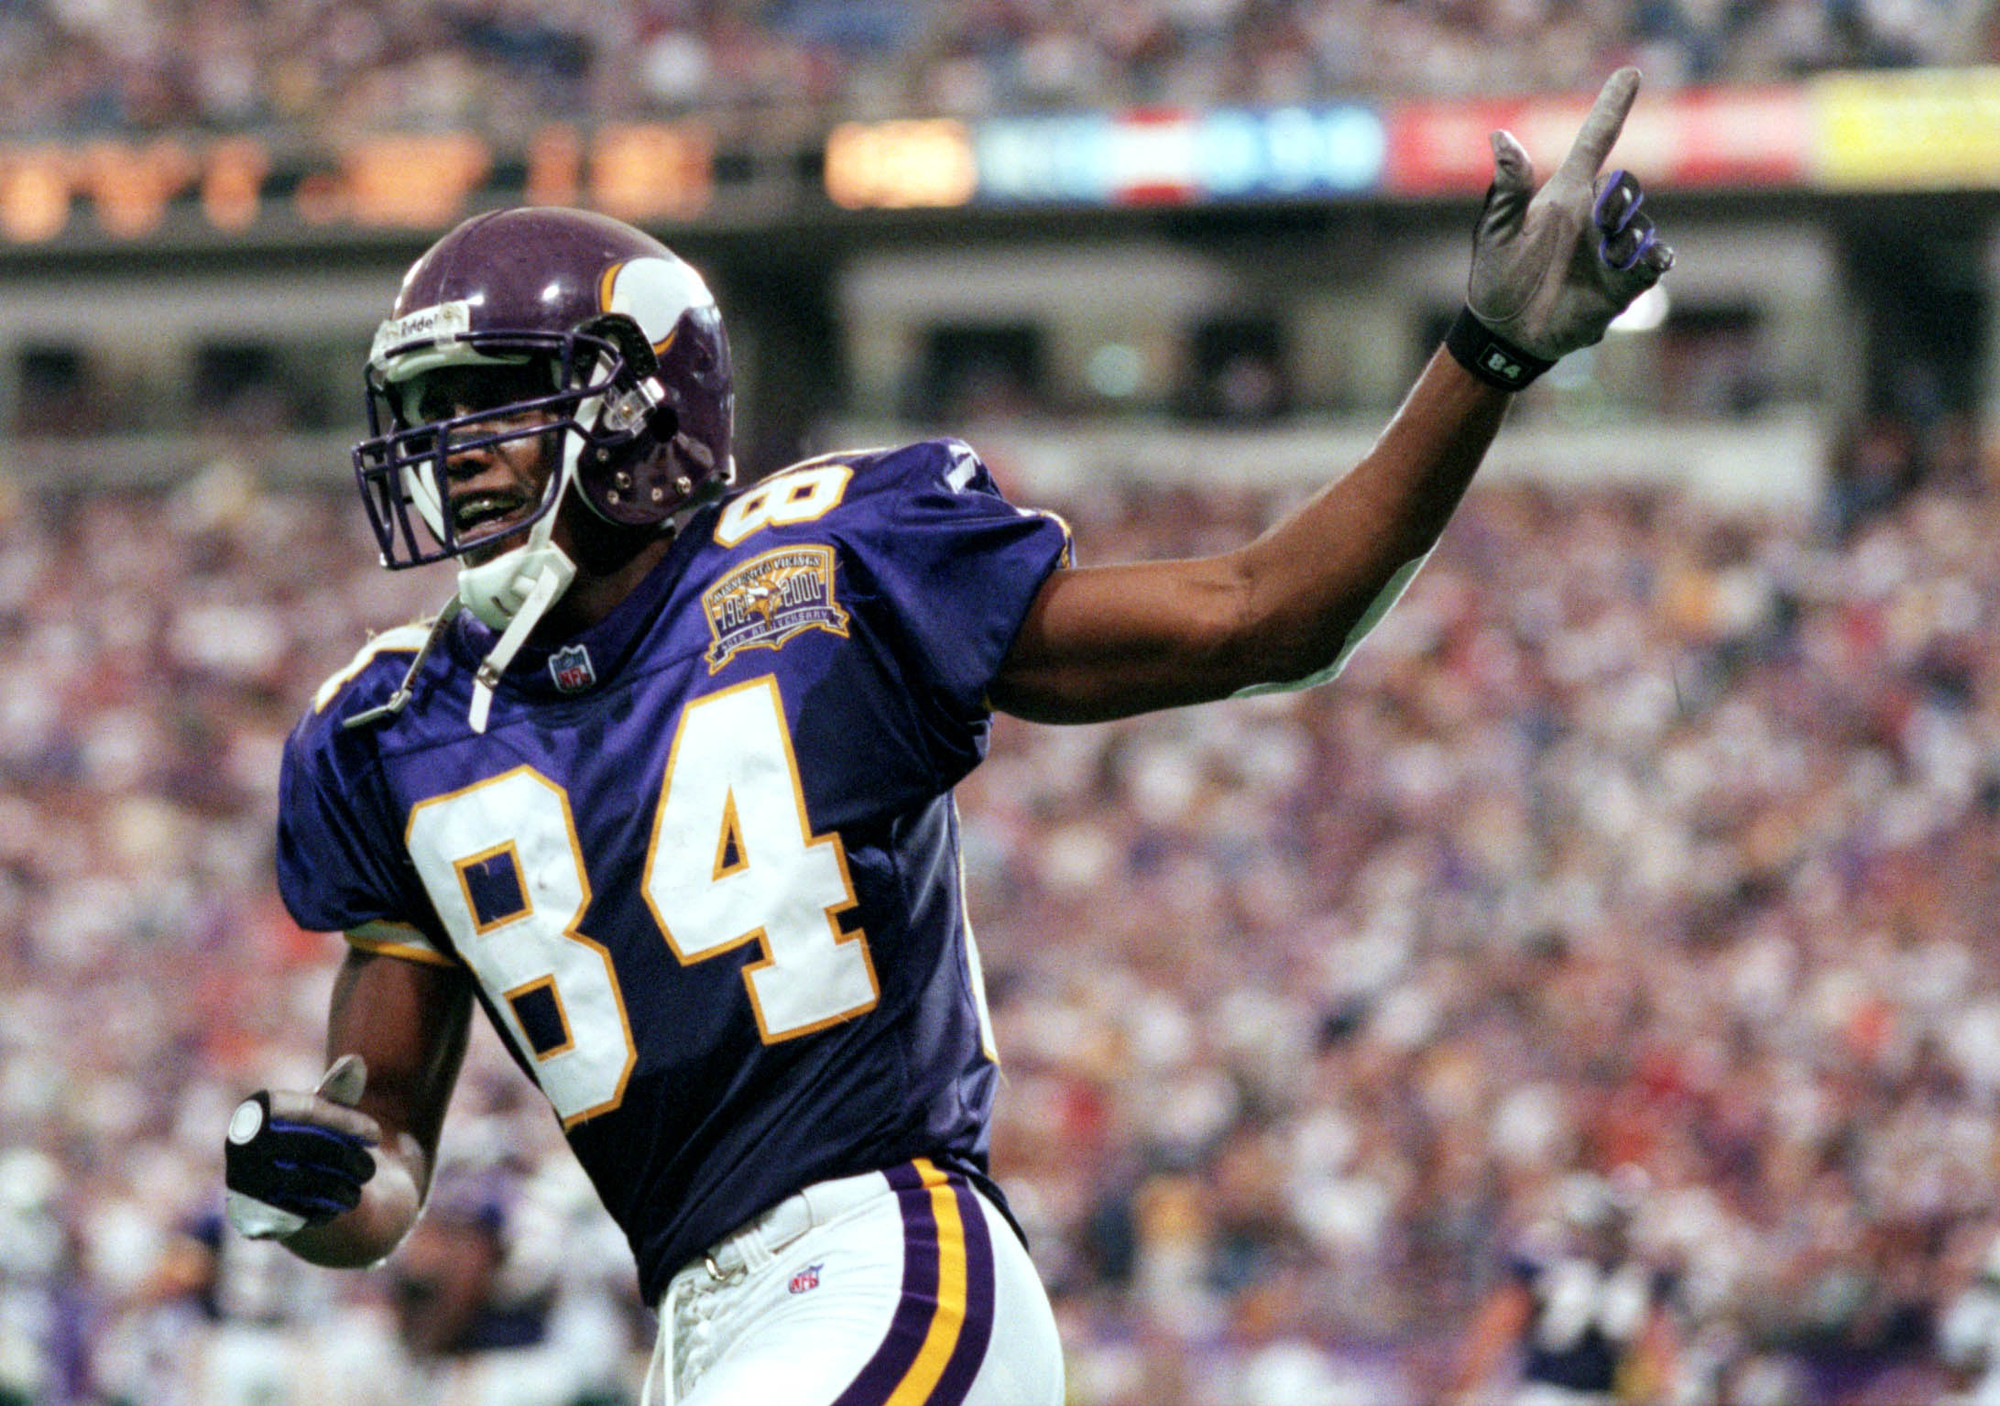 Res: 2000x1406, Moss ranks second all-time in touchdown receptions with 156 and had eight 1,200-yard seasons in his career.The Hall of Fame's enshrinement ceremony will be ...